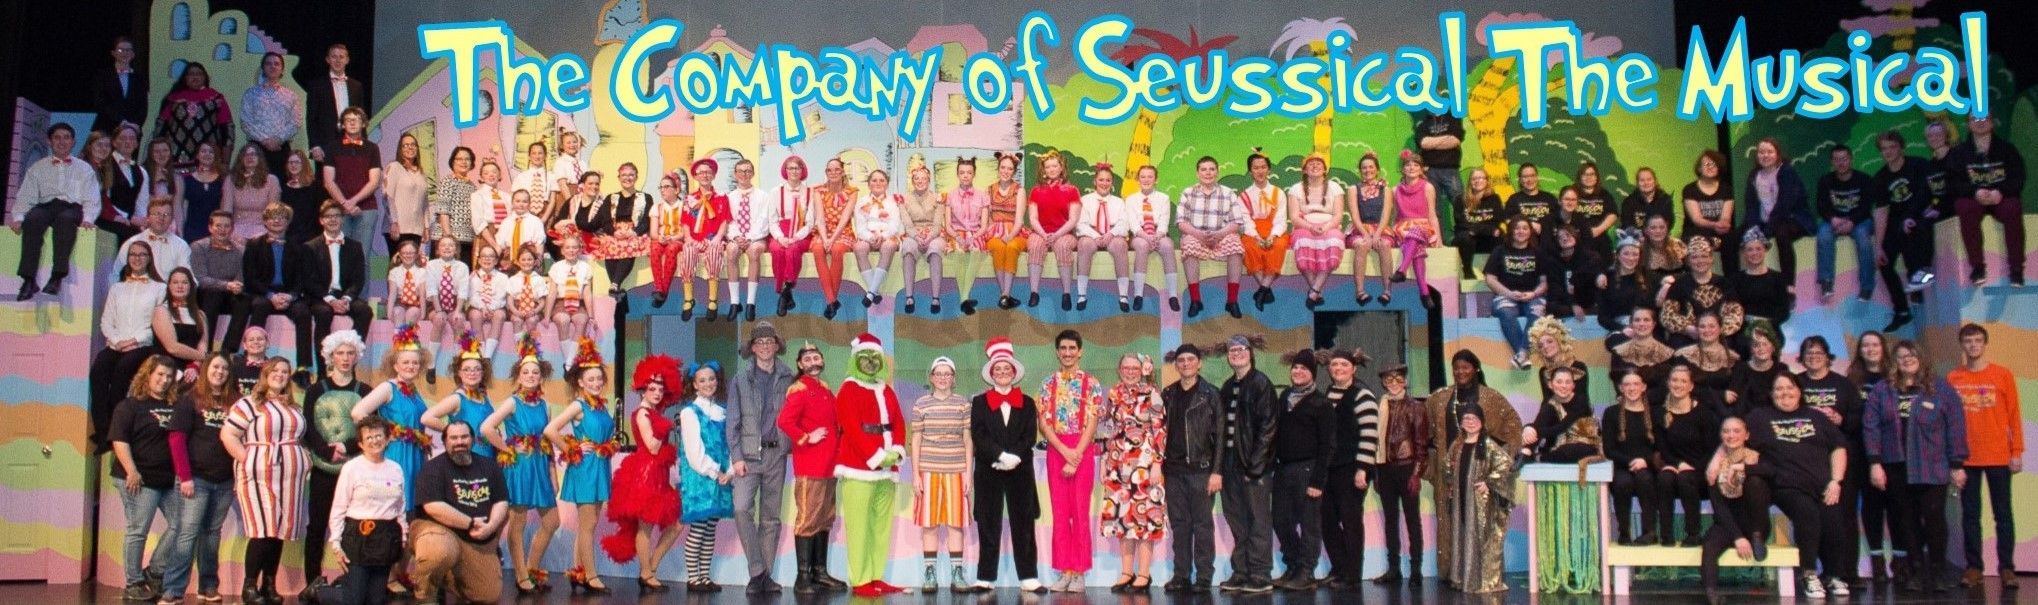 1582806782-seussical_company_photo